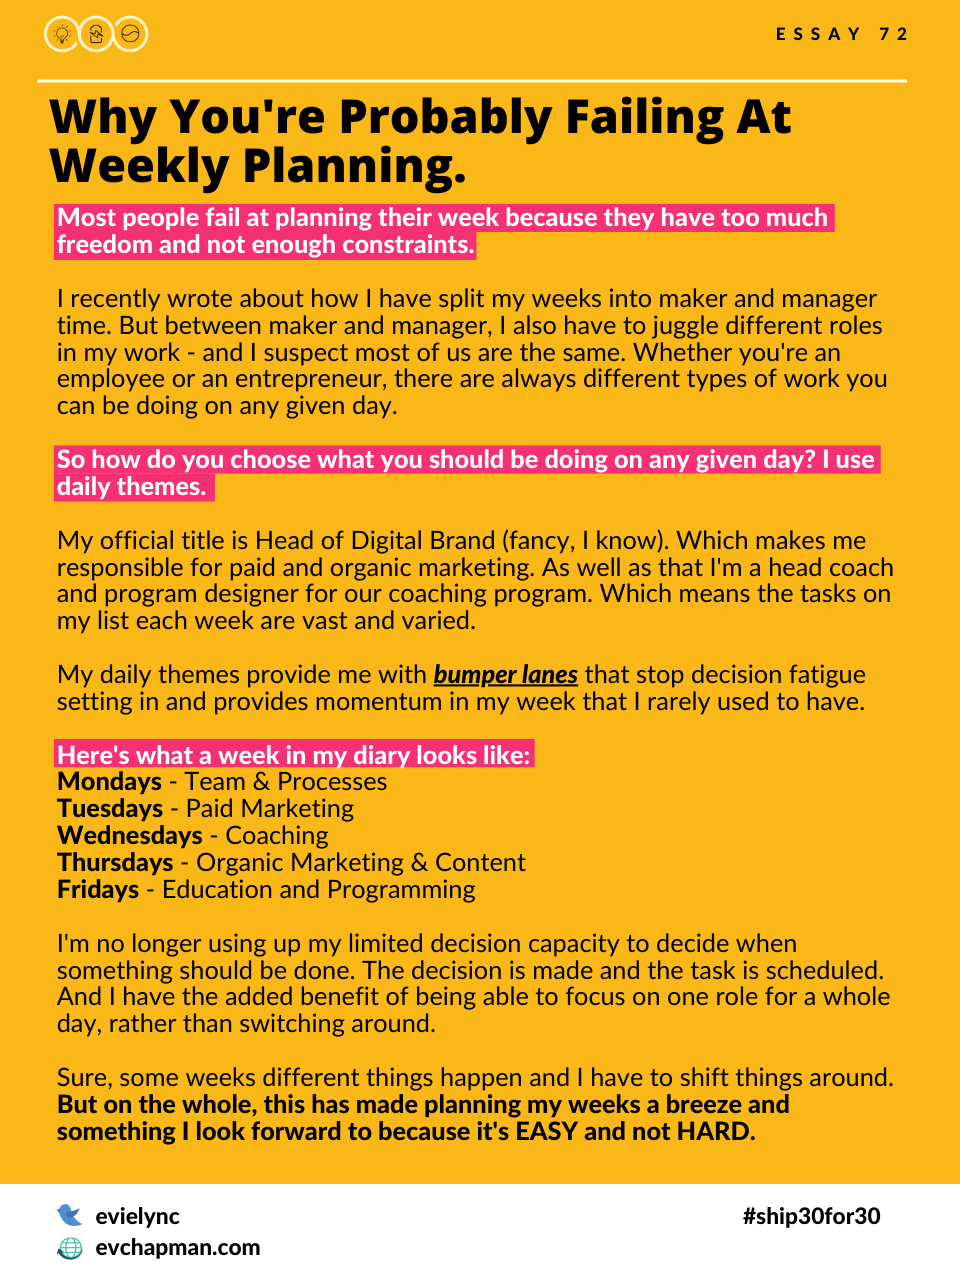 Why You're Probably Failing At Weekly Planning